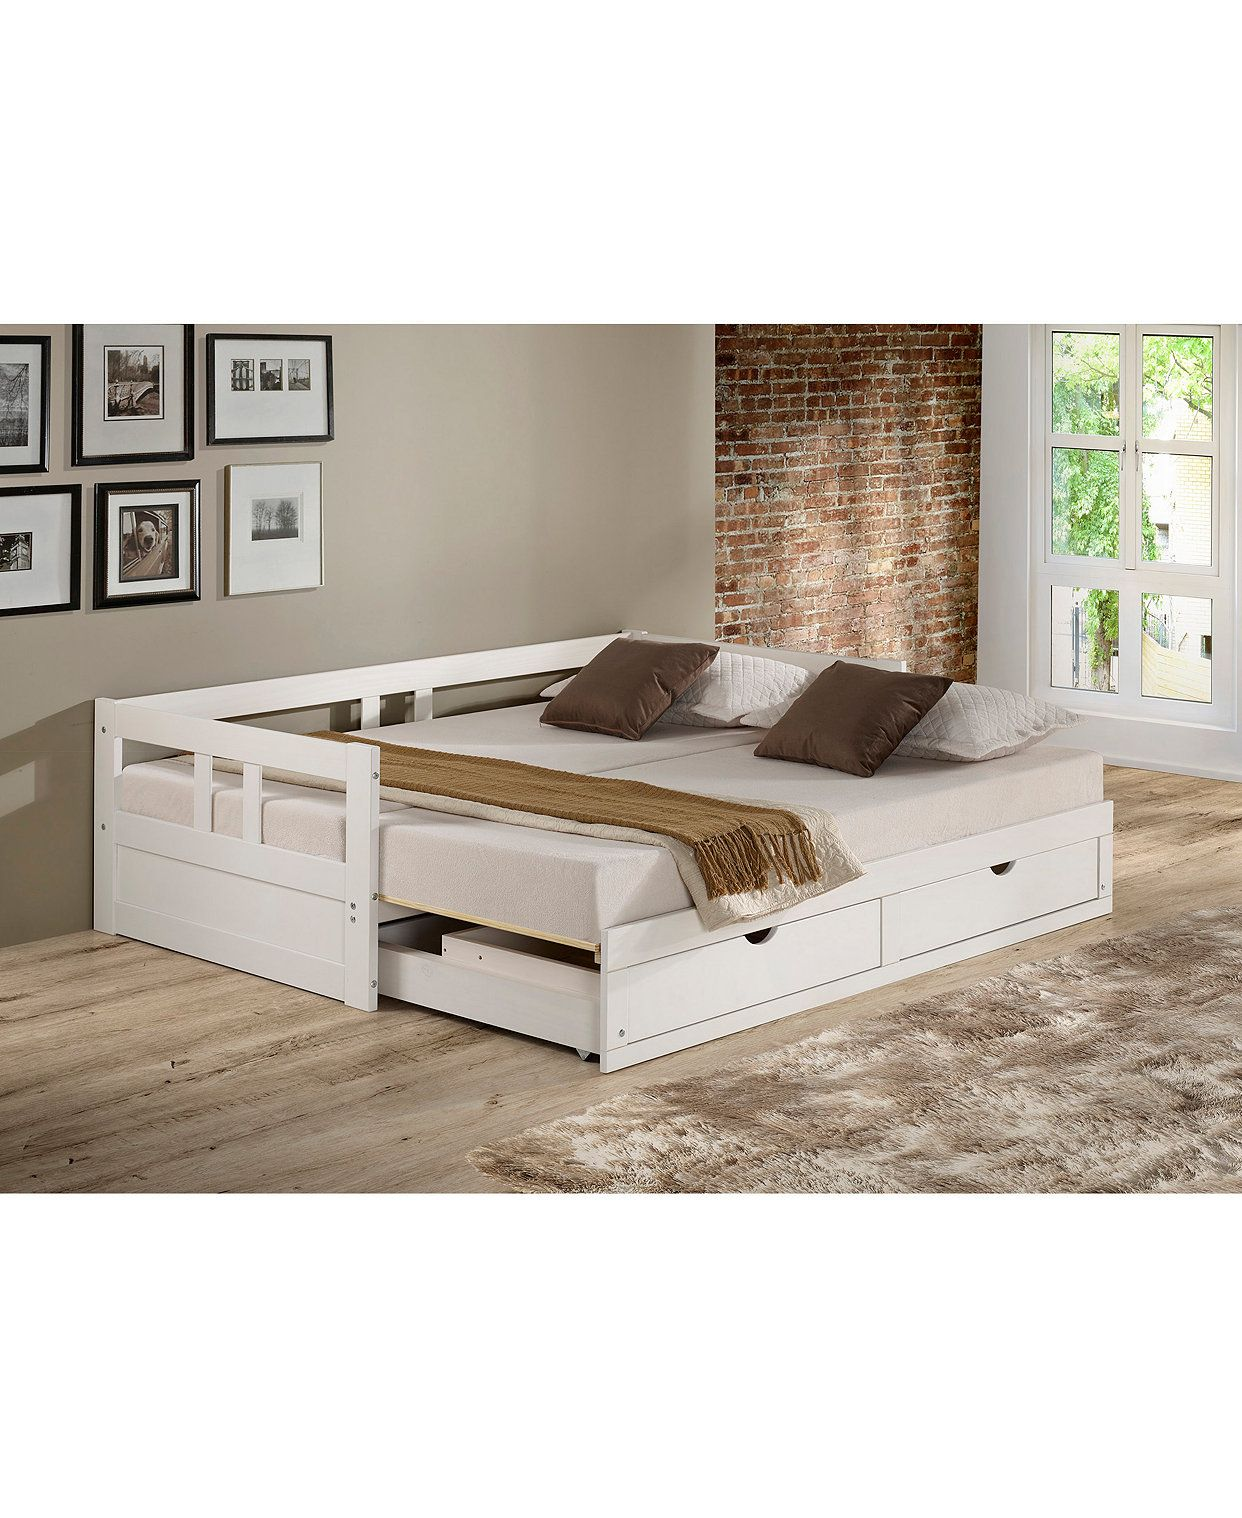 Melody Twin To King Trundle Daybed With Storage Drawers Daybed With Storage Daybed With Trundle Alaterre Furniture Daybed that converts to king